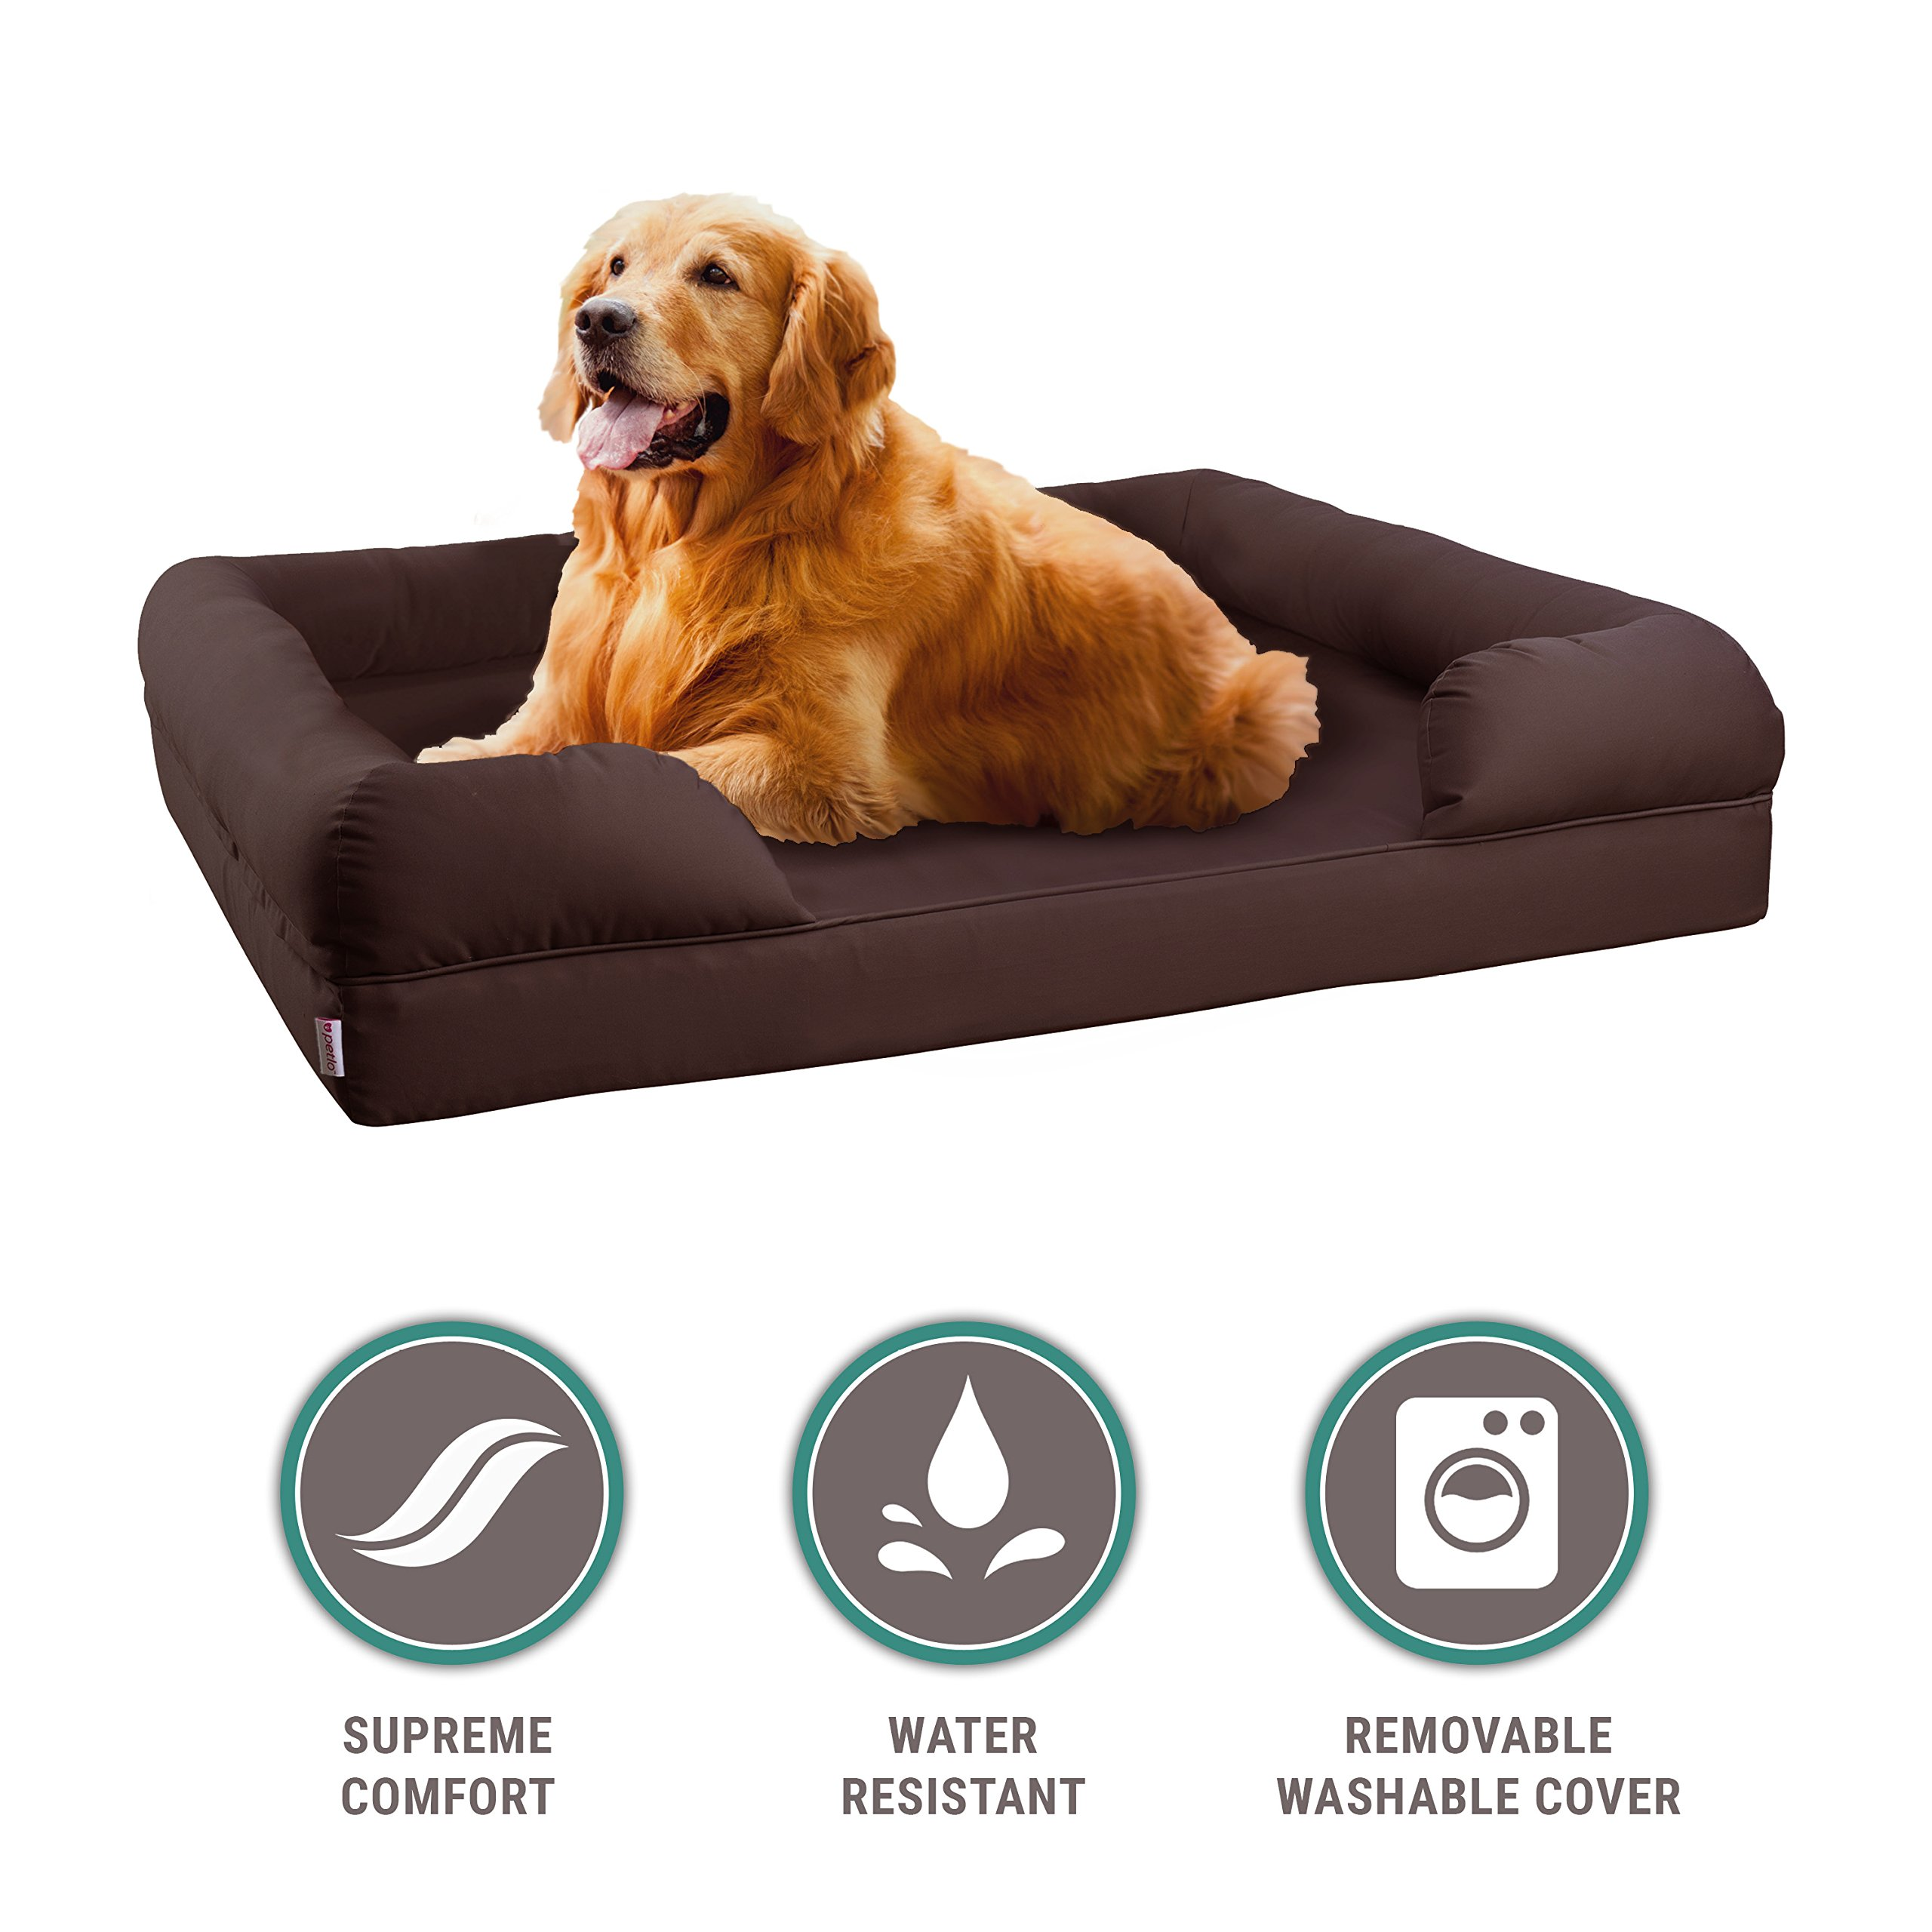 Petlo Orthopedic Pet Sofa Bed - Dog, Cat or Puppy Memory Foam Mattress Comfortable Couch for Pets with Removable Washable Cover (Large - 36'' x 28'' x 9'', Chocolate Brown)